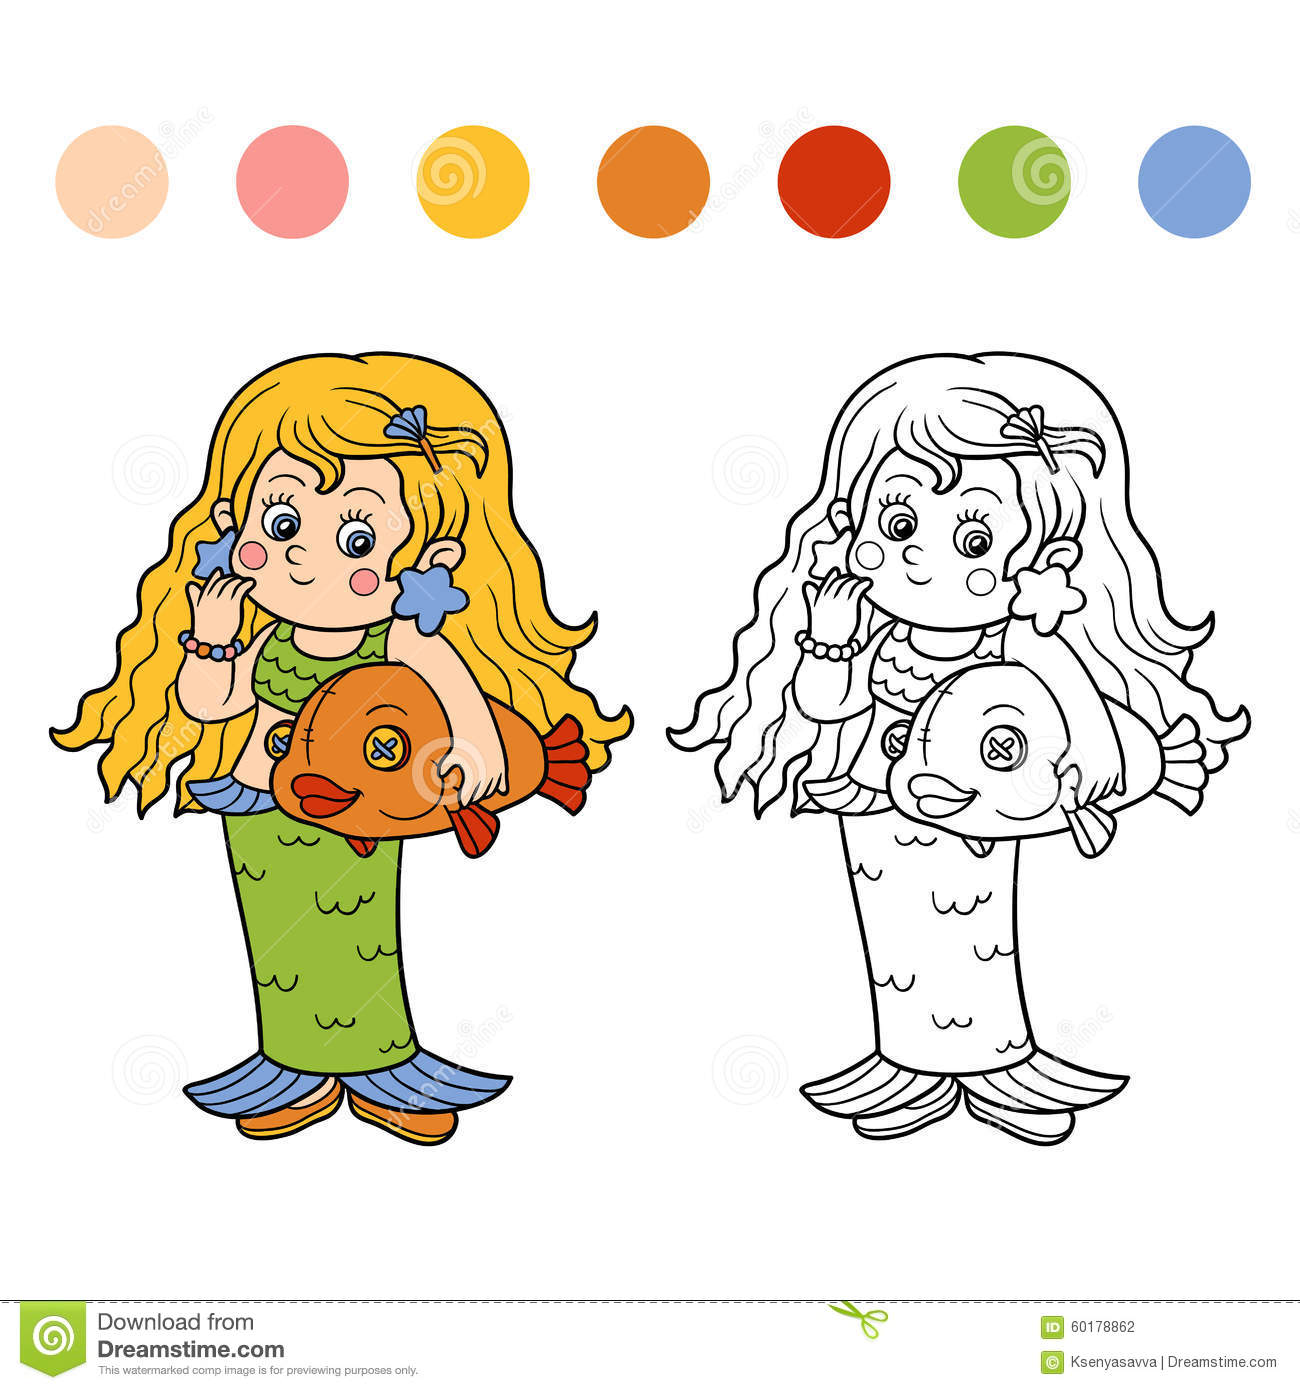 coloring book for children halloween characters mermaid - Colouring Book For Children